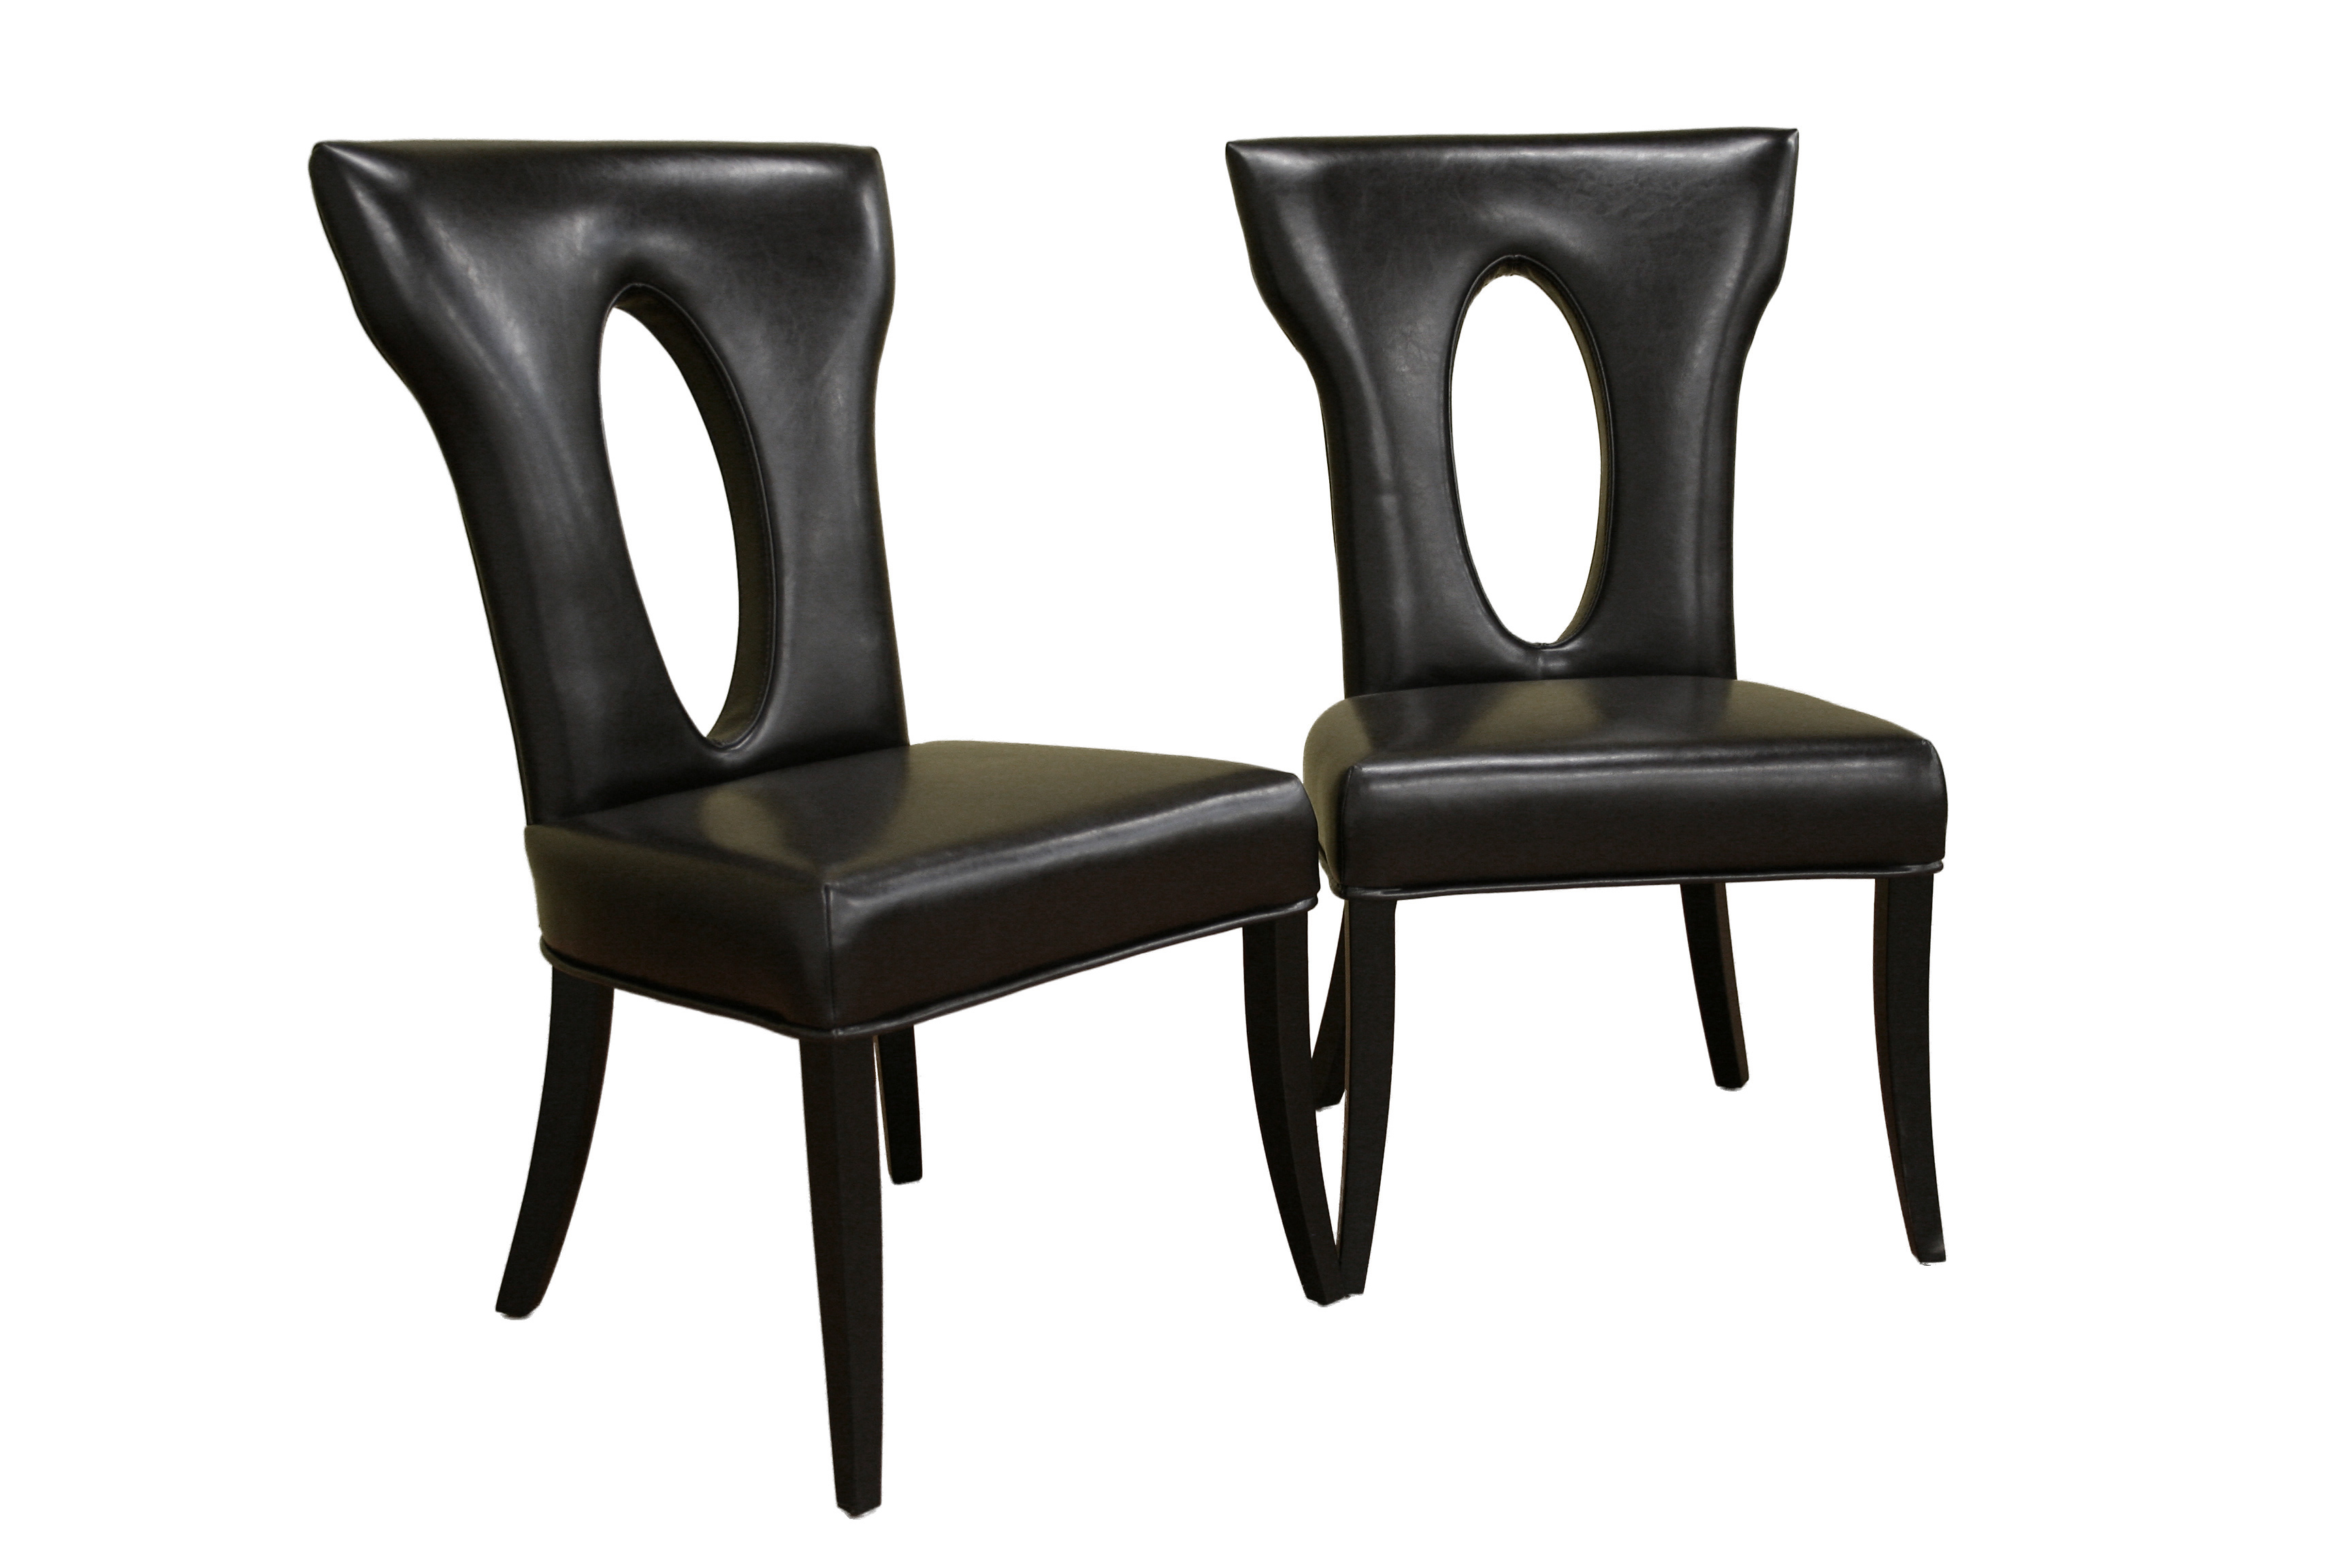 Black High Back Dining Chairs Chair Pads Amp Cushions